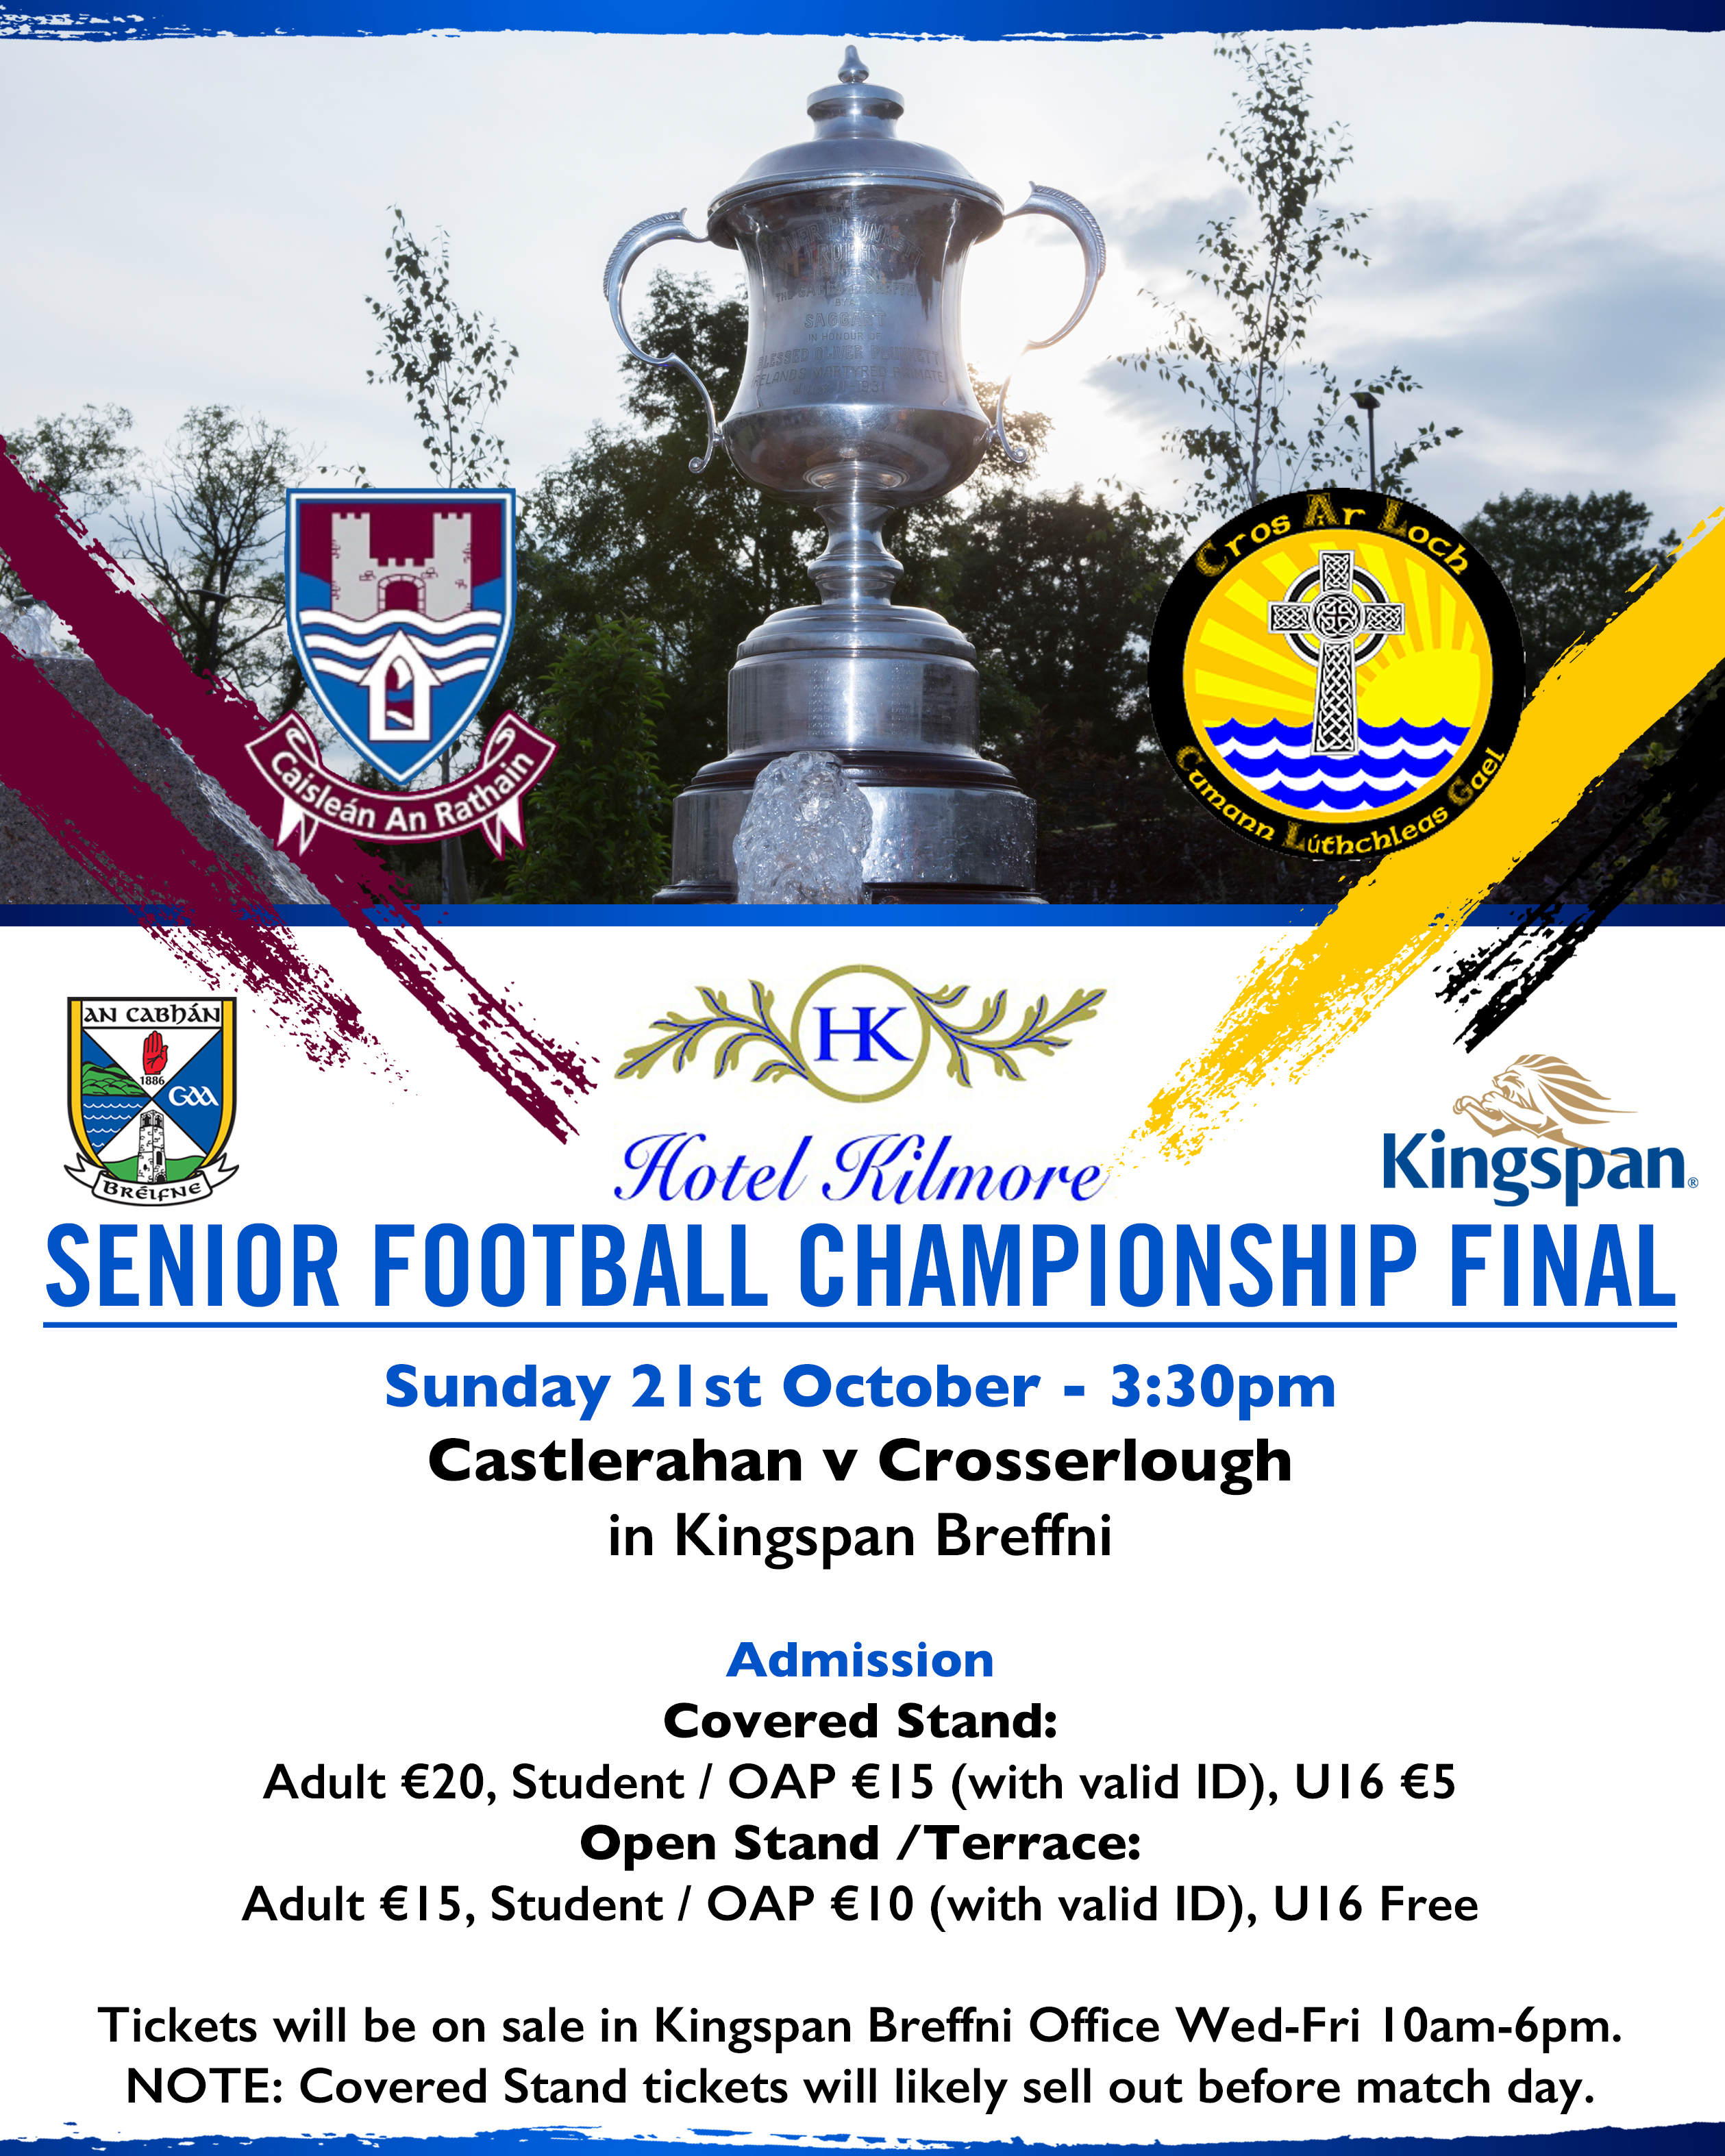 Ticket Information for Hotel Kilmore SFC Final